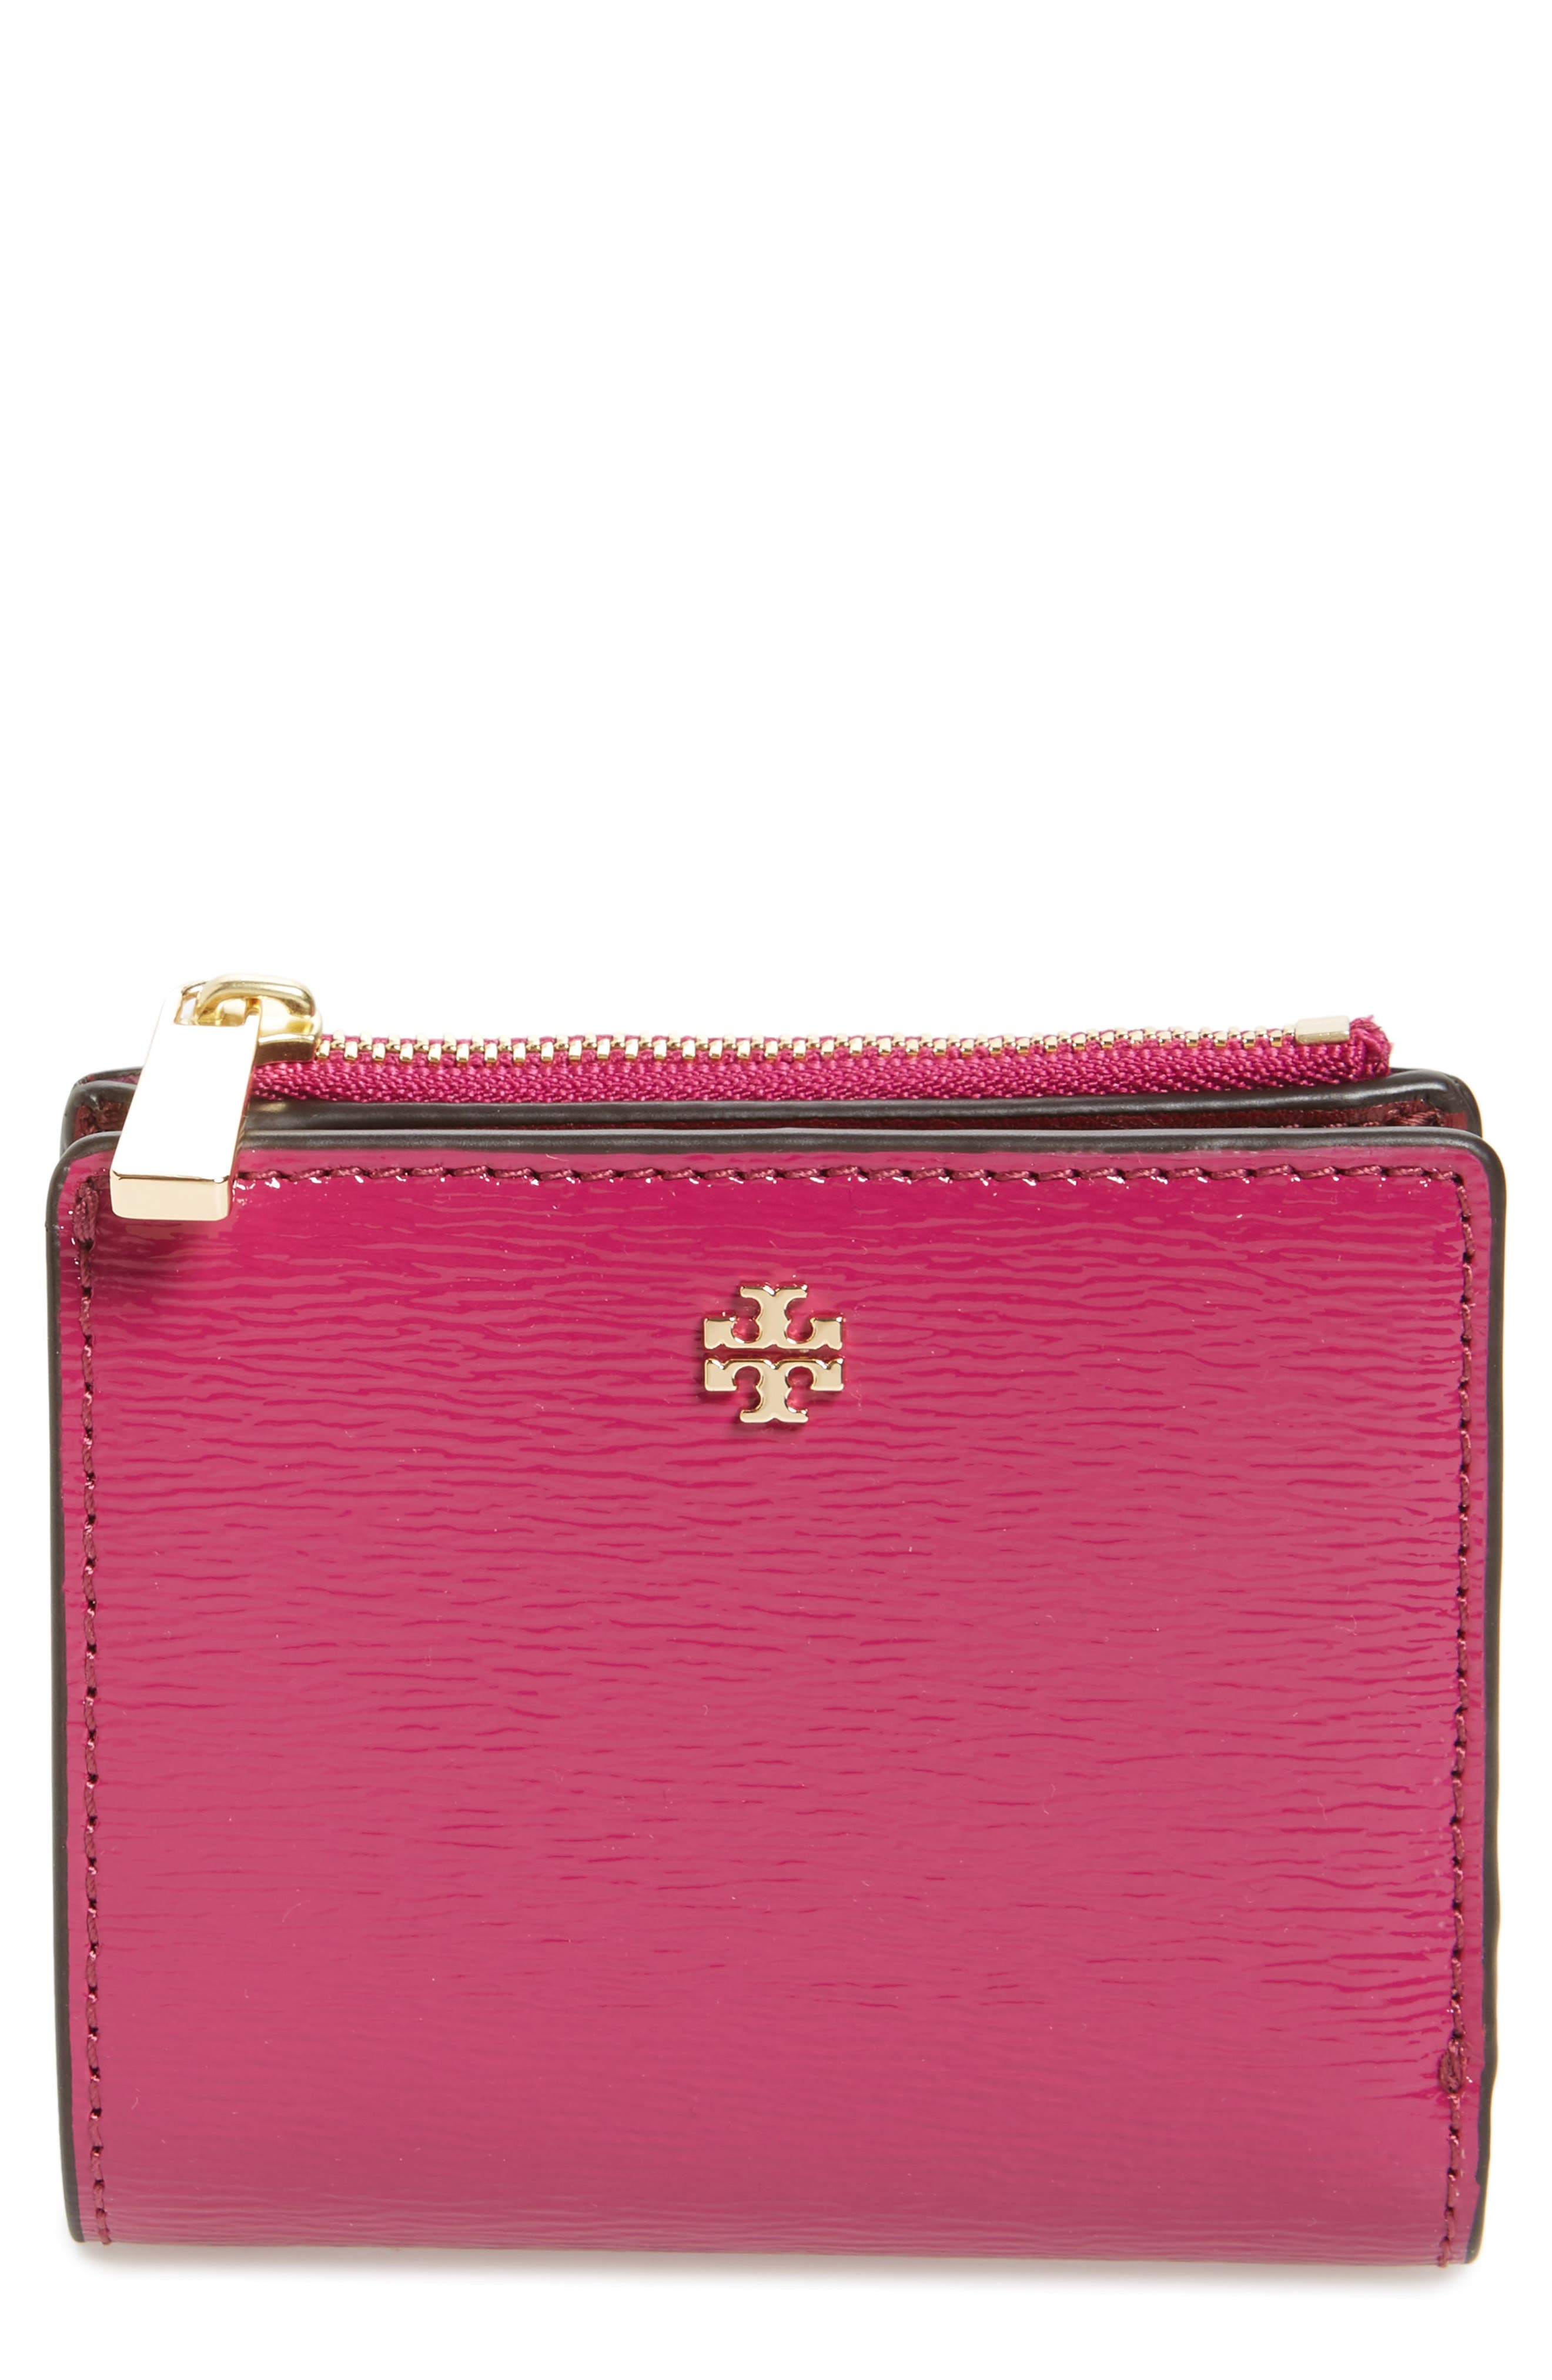 Tory Burch Mini Robinson Wallet Patent Leather Bifold Wallet